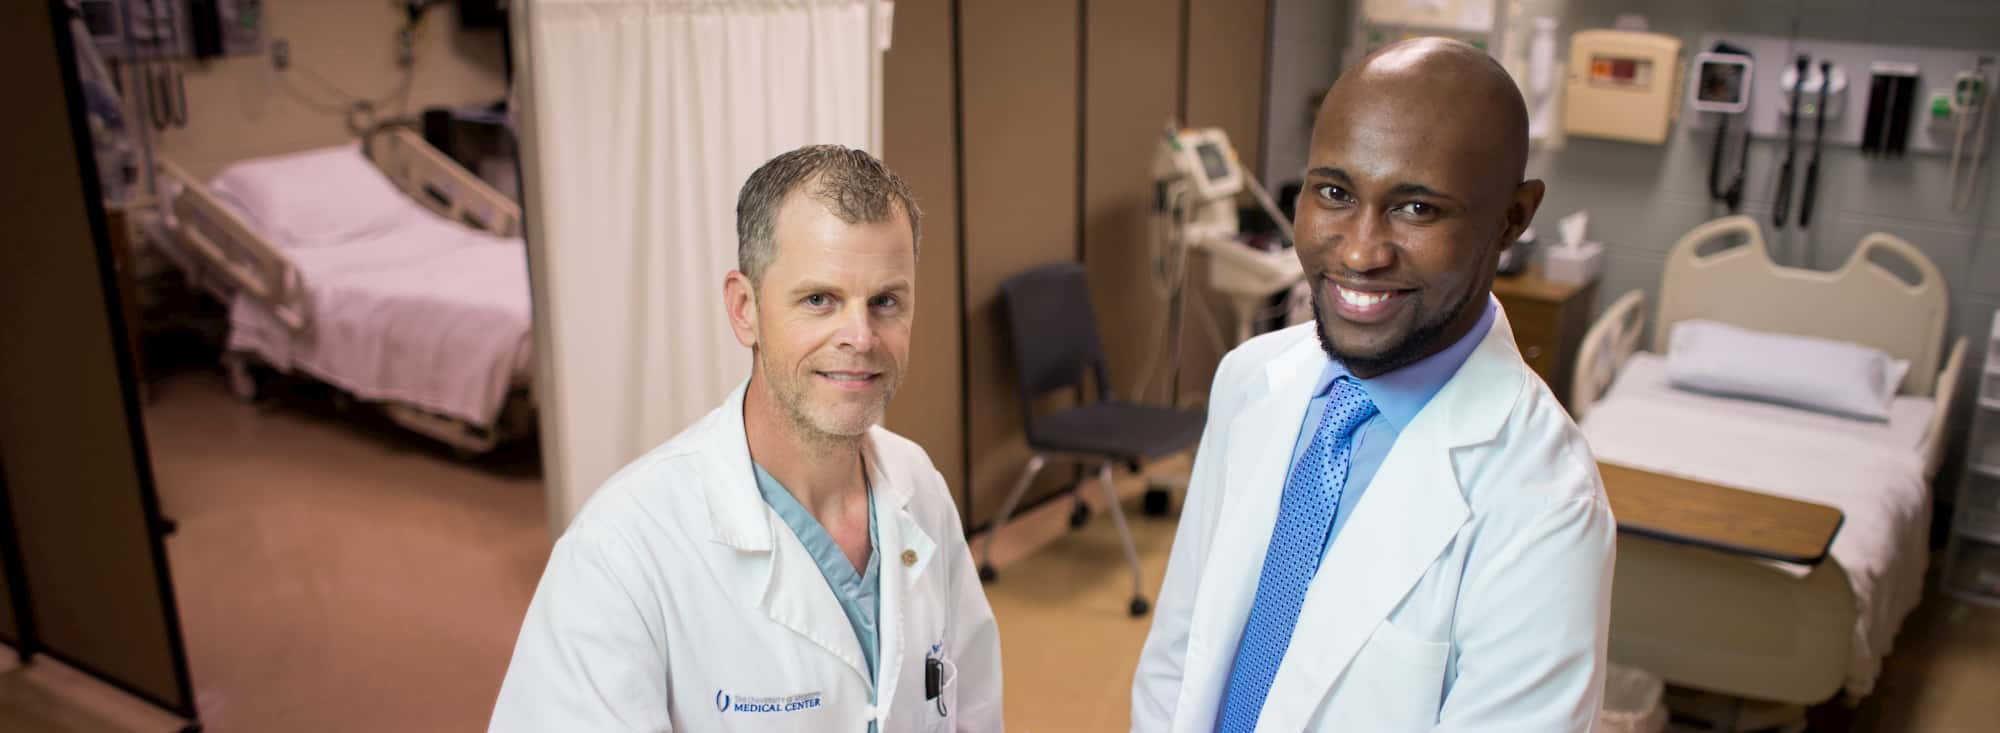 Two men standing in a clinical setting